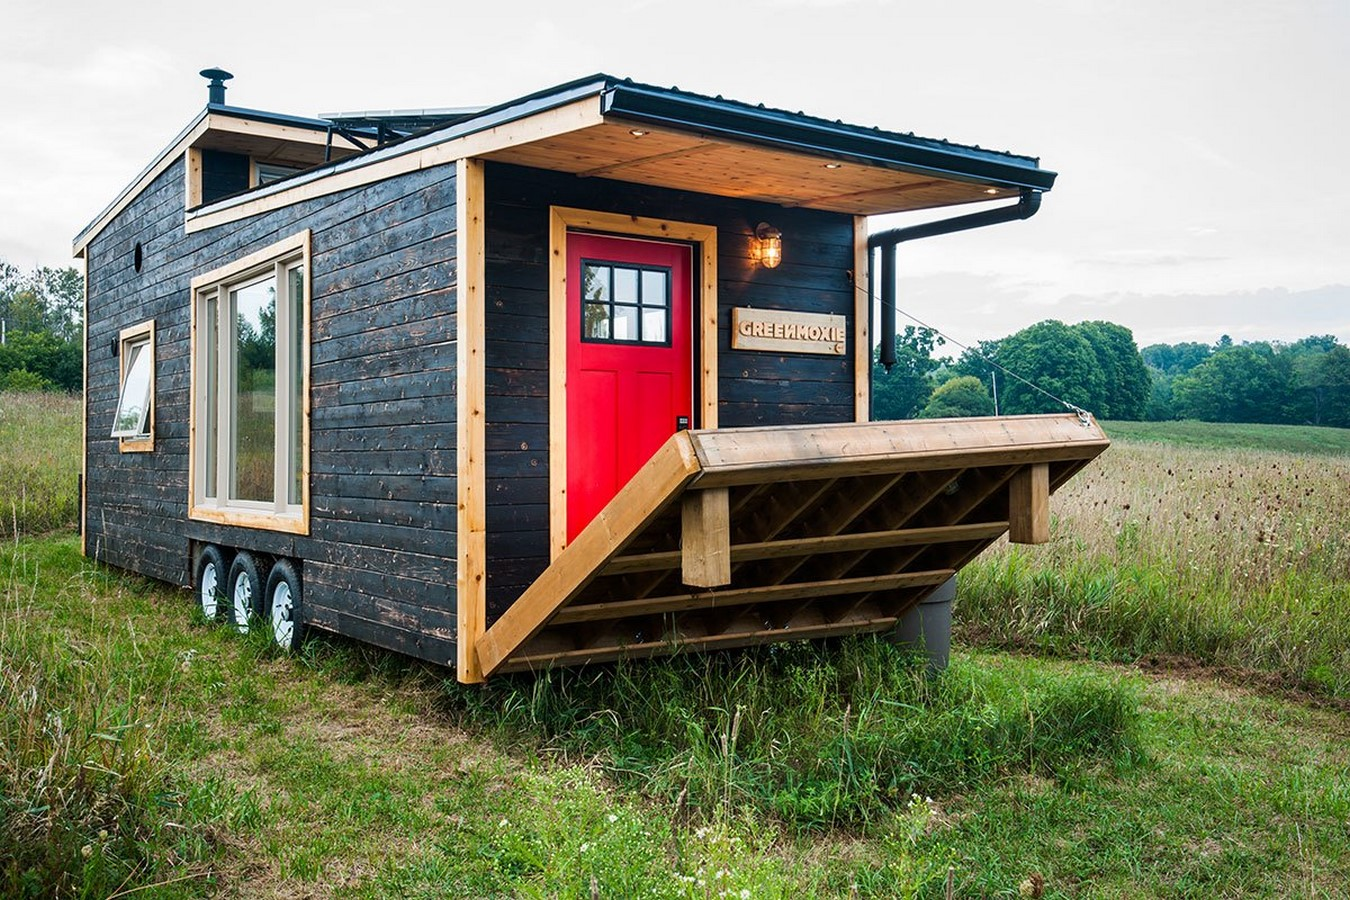 20 Trendy space saving solutions for tiny homes - Sheet11